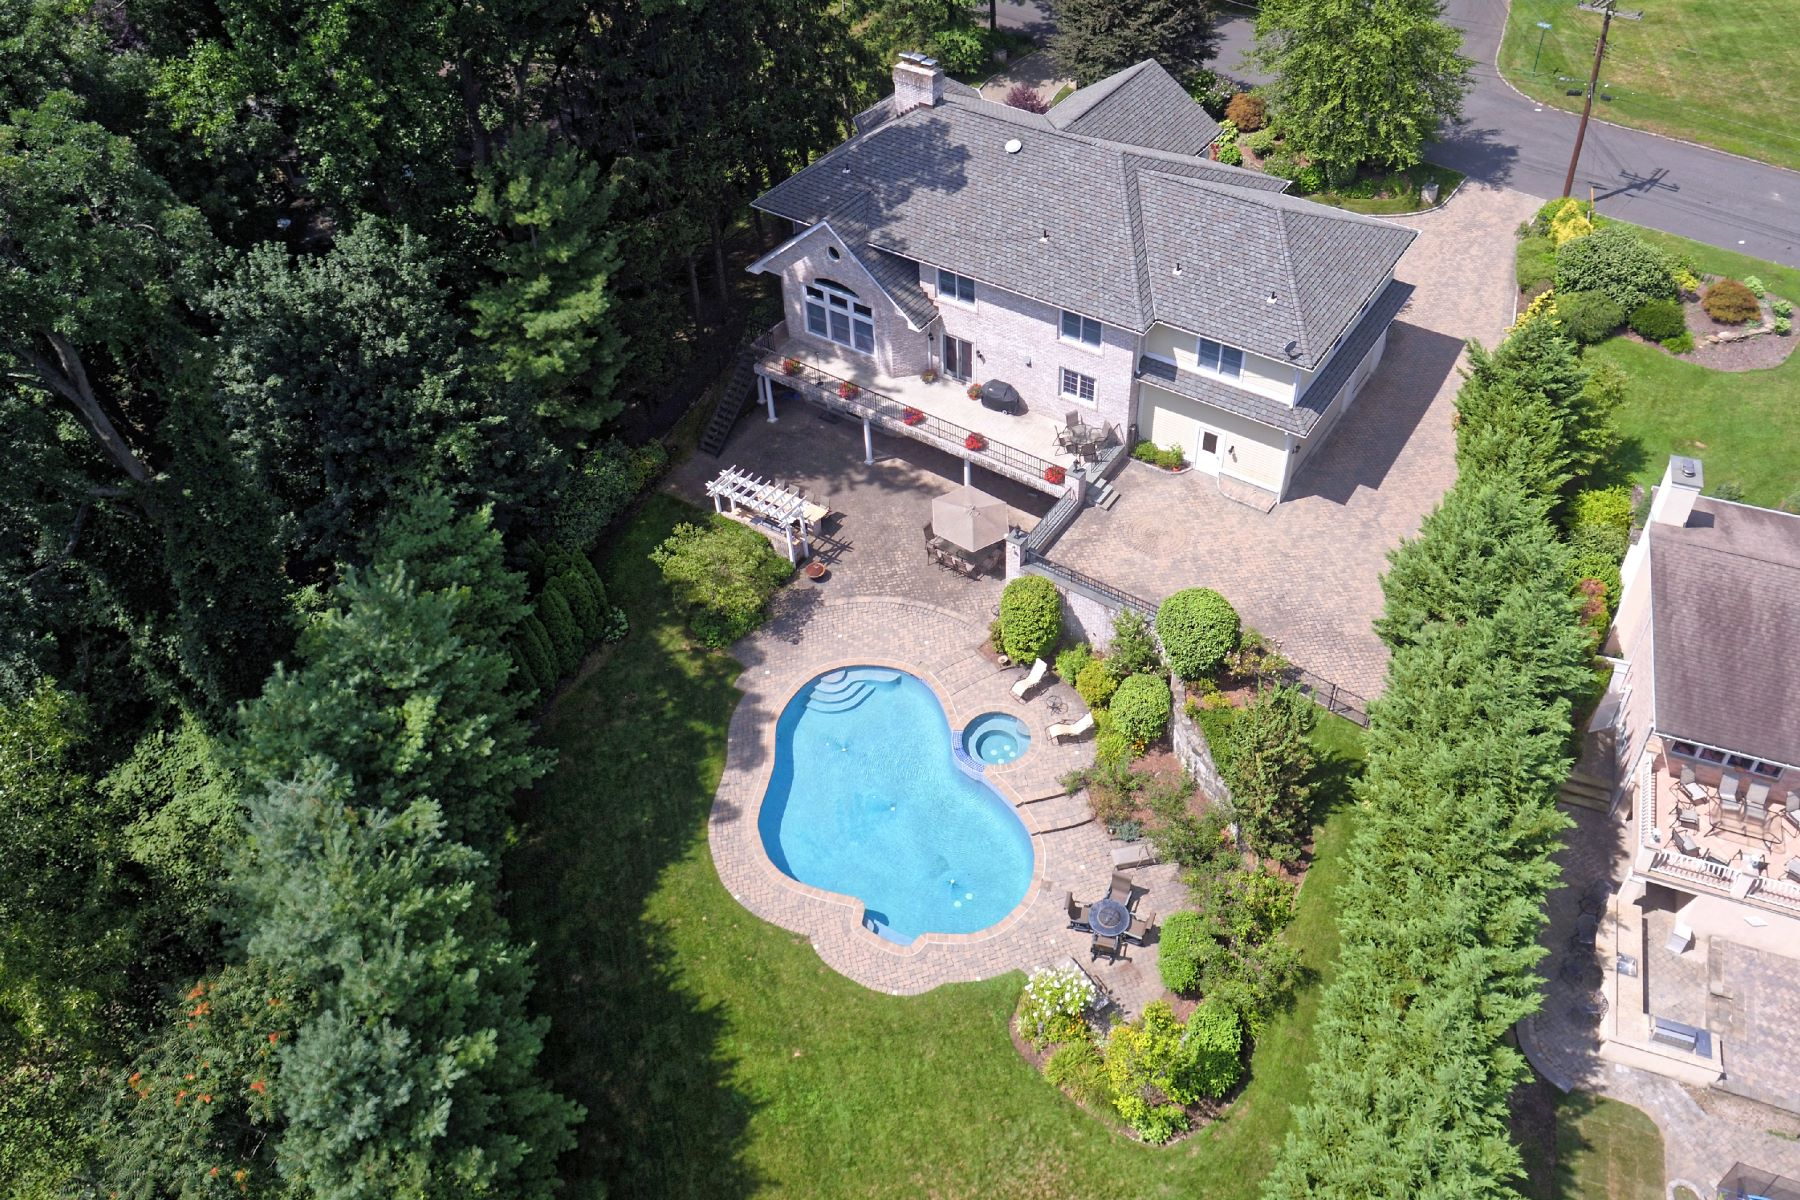 Single Family Home for Sale at Resort Like Property in Lake Isle Estates 124 North Lakeshore Drive Eastchester, New York 10709 United States